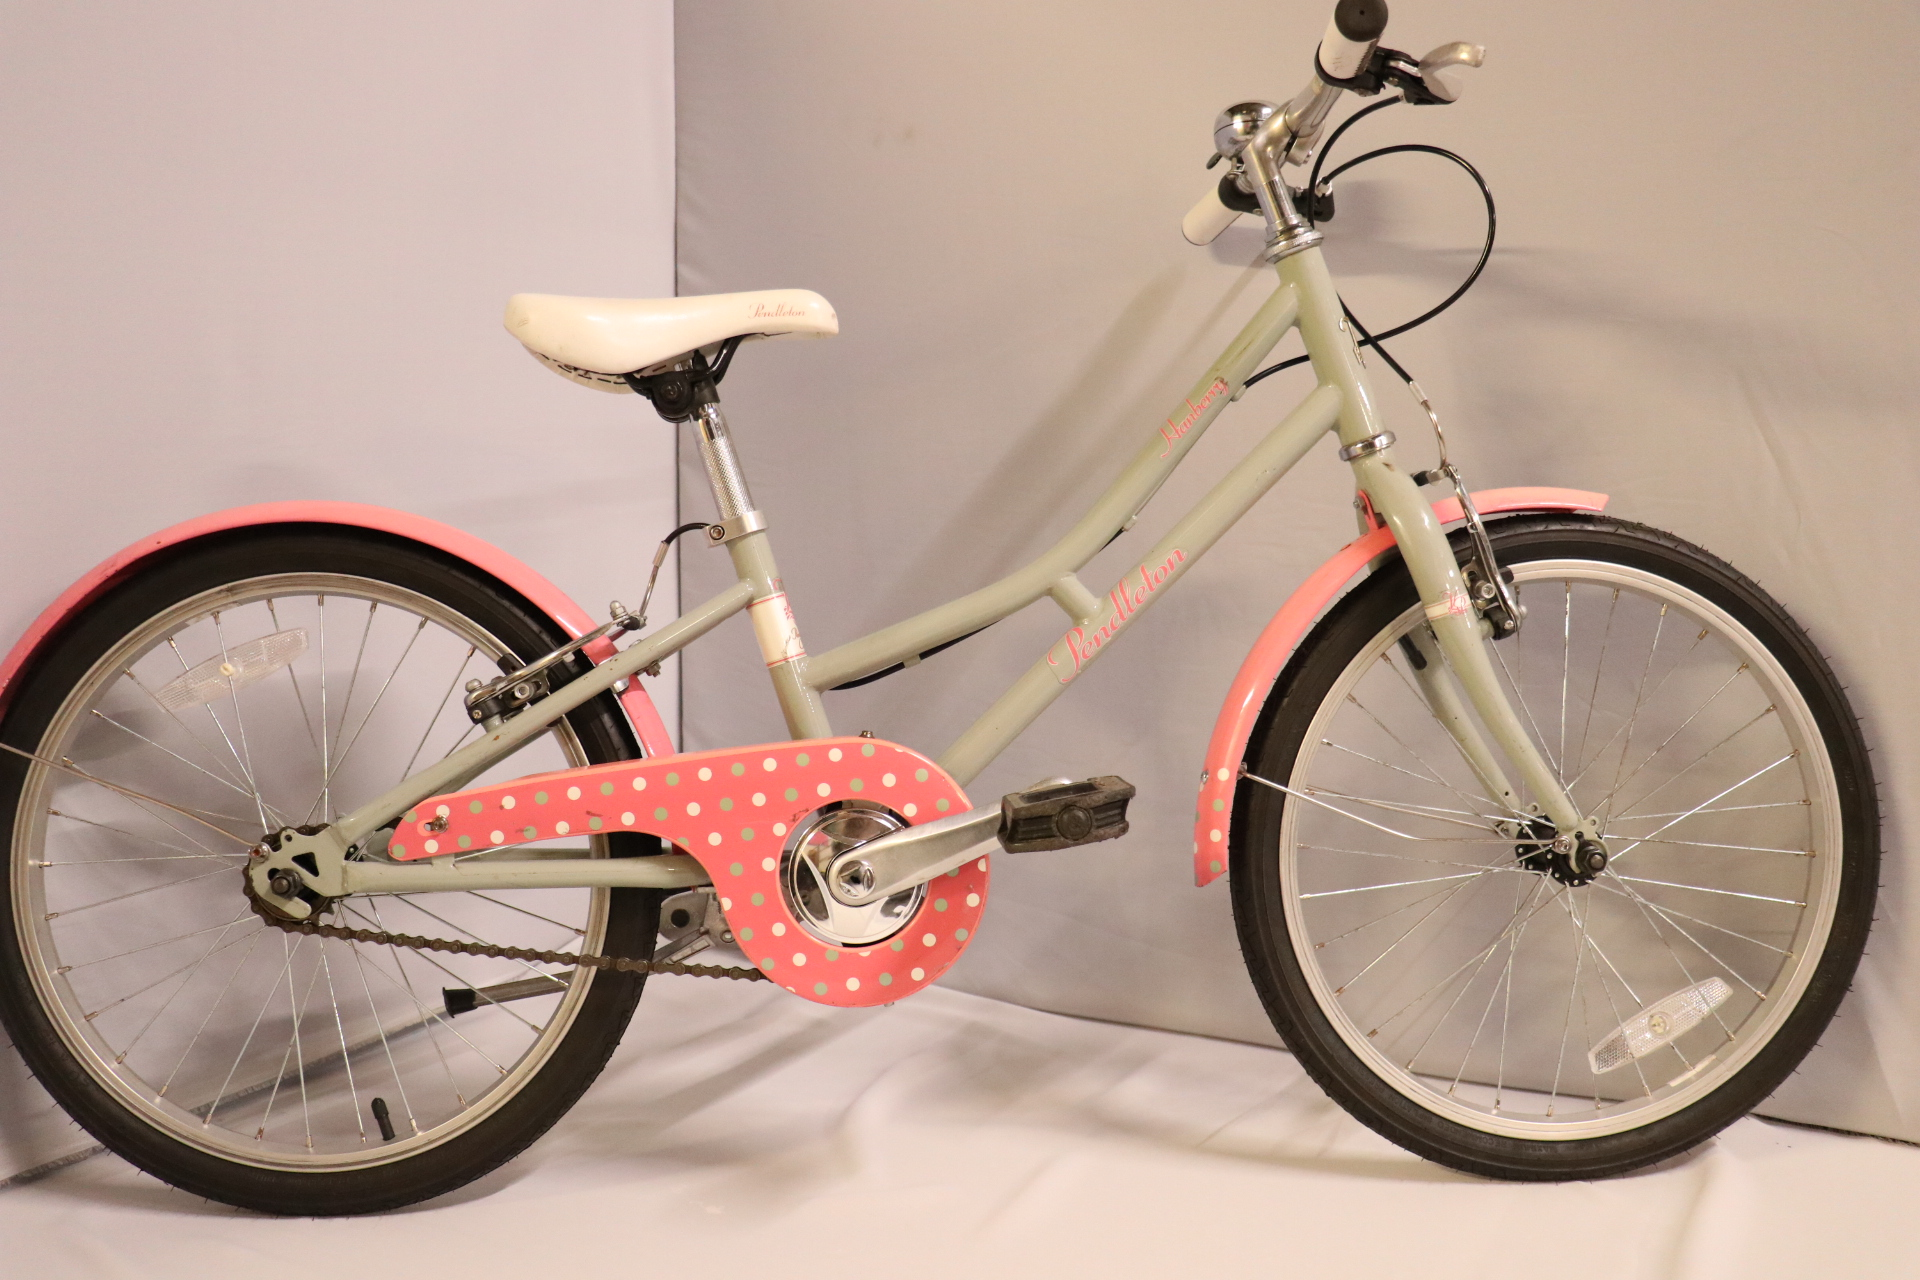 Pendleton children's bike in grey and pink